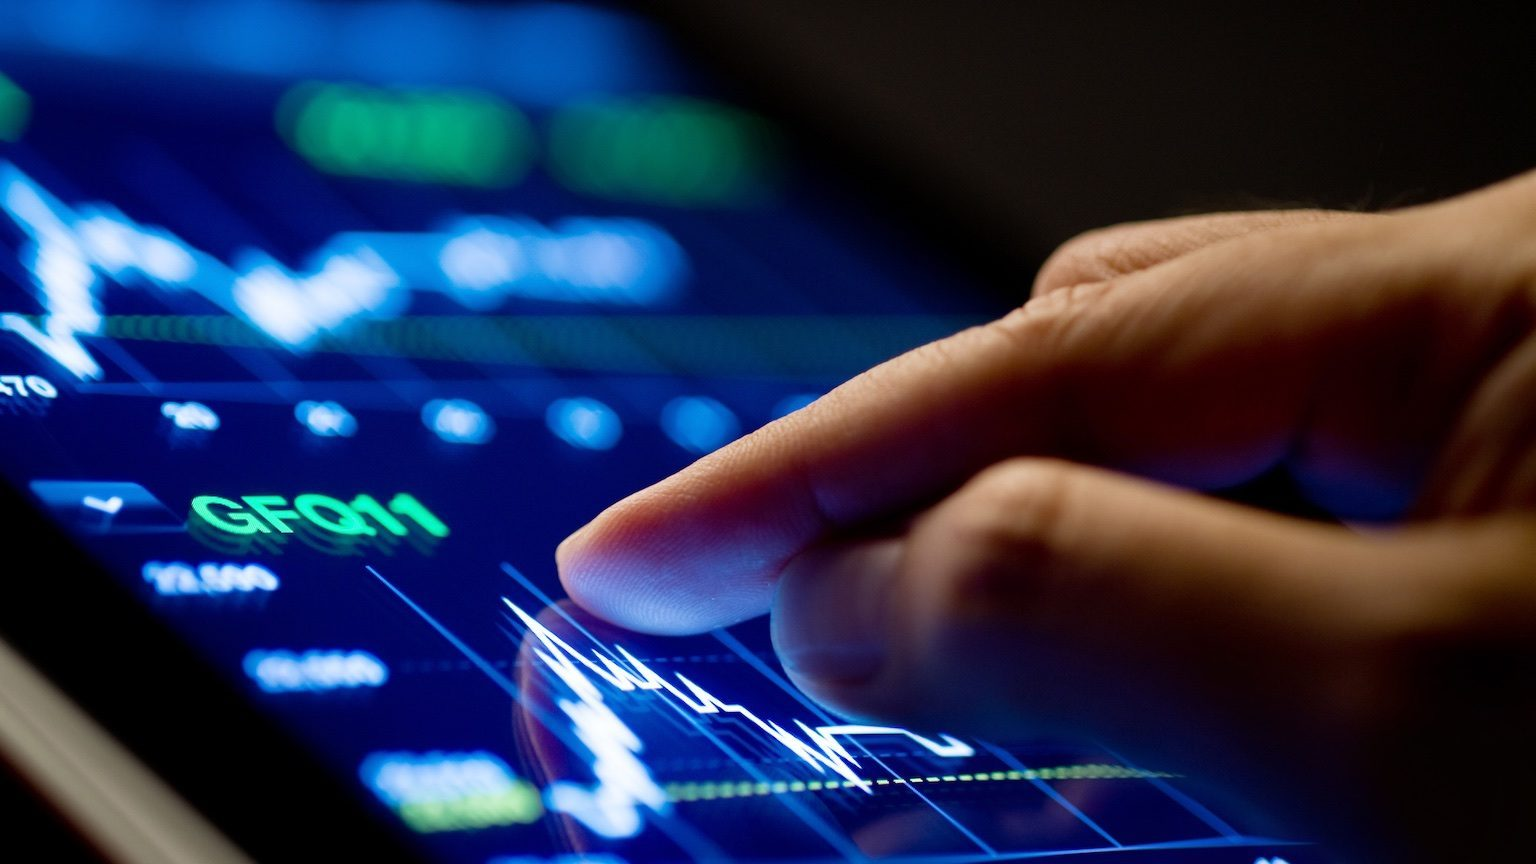 Market Analyze with Digital Moniter focus on tip of finger.